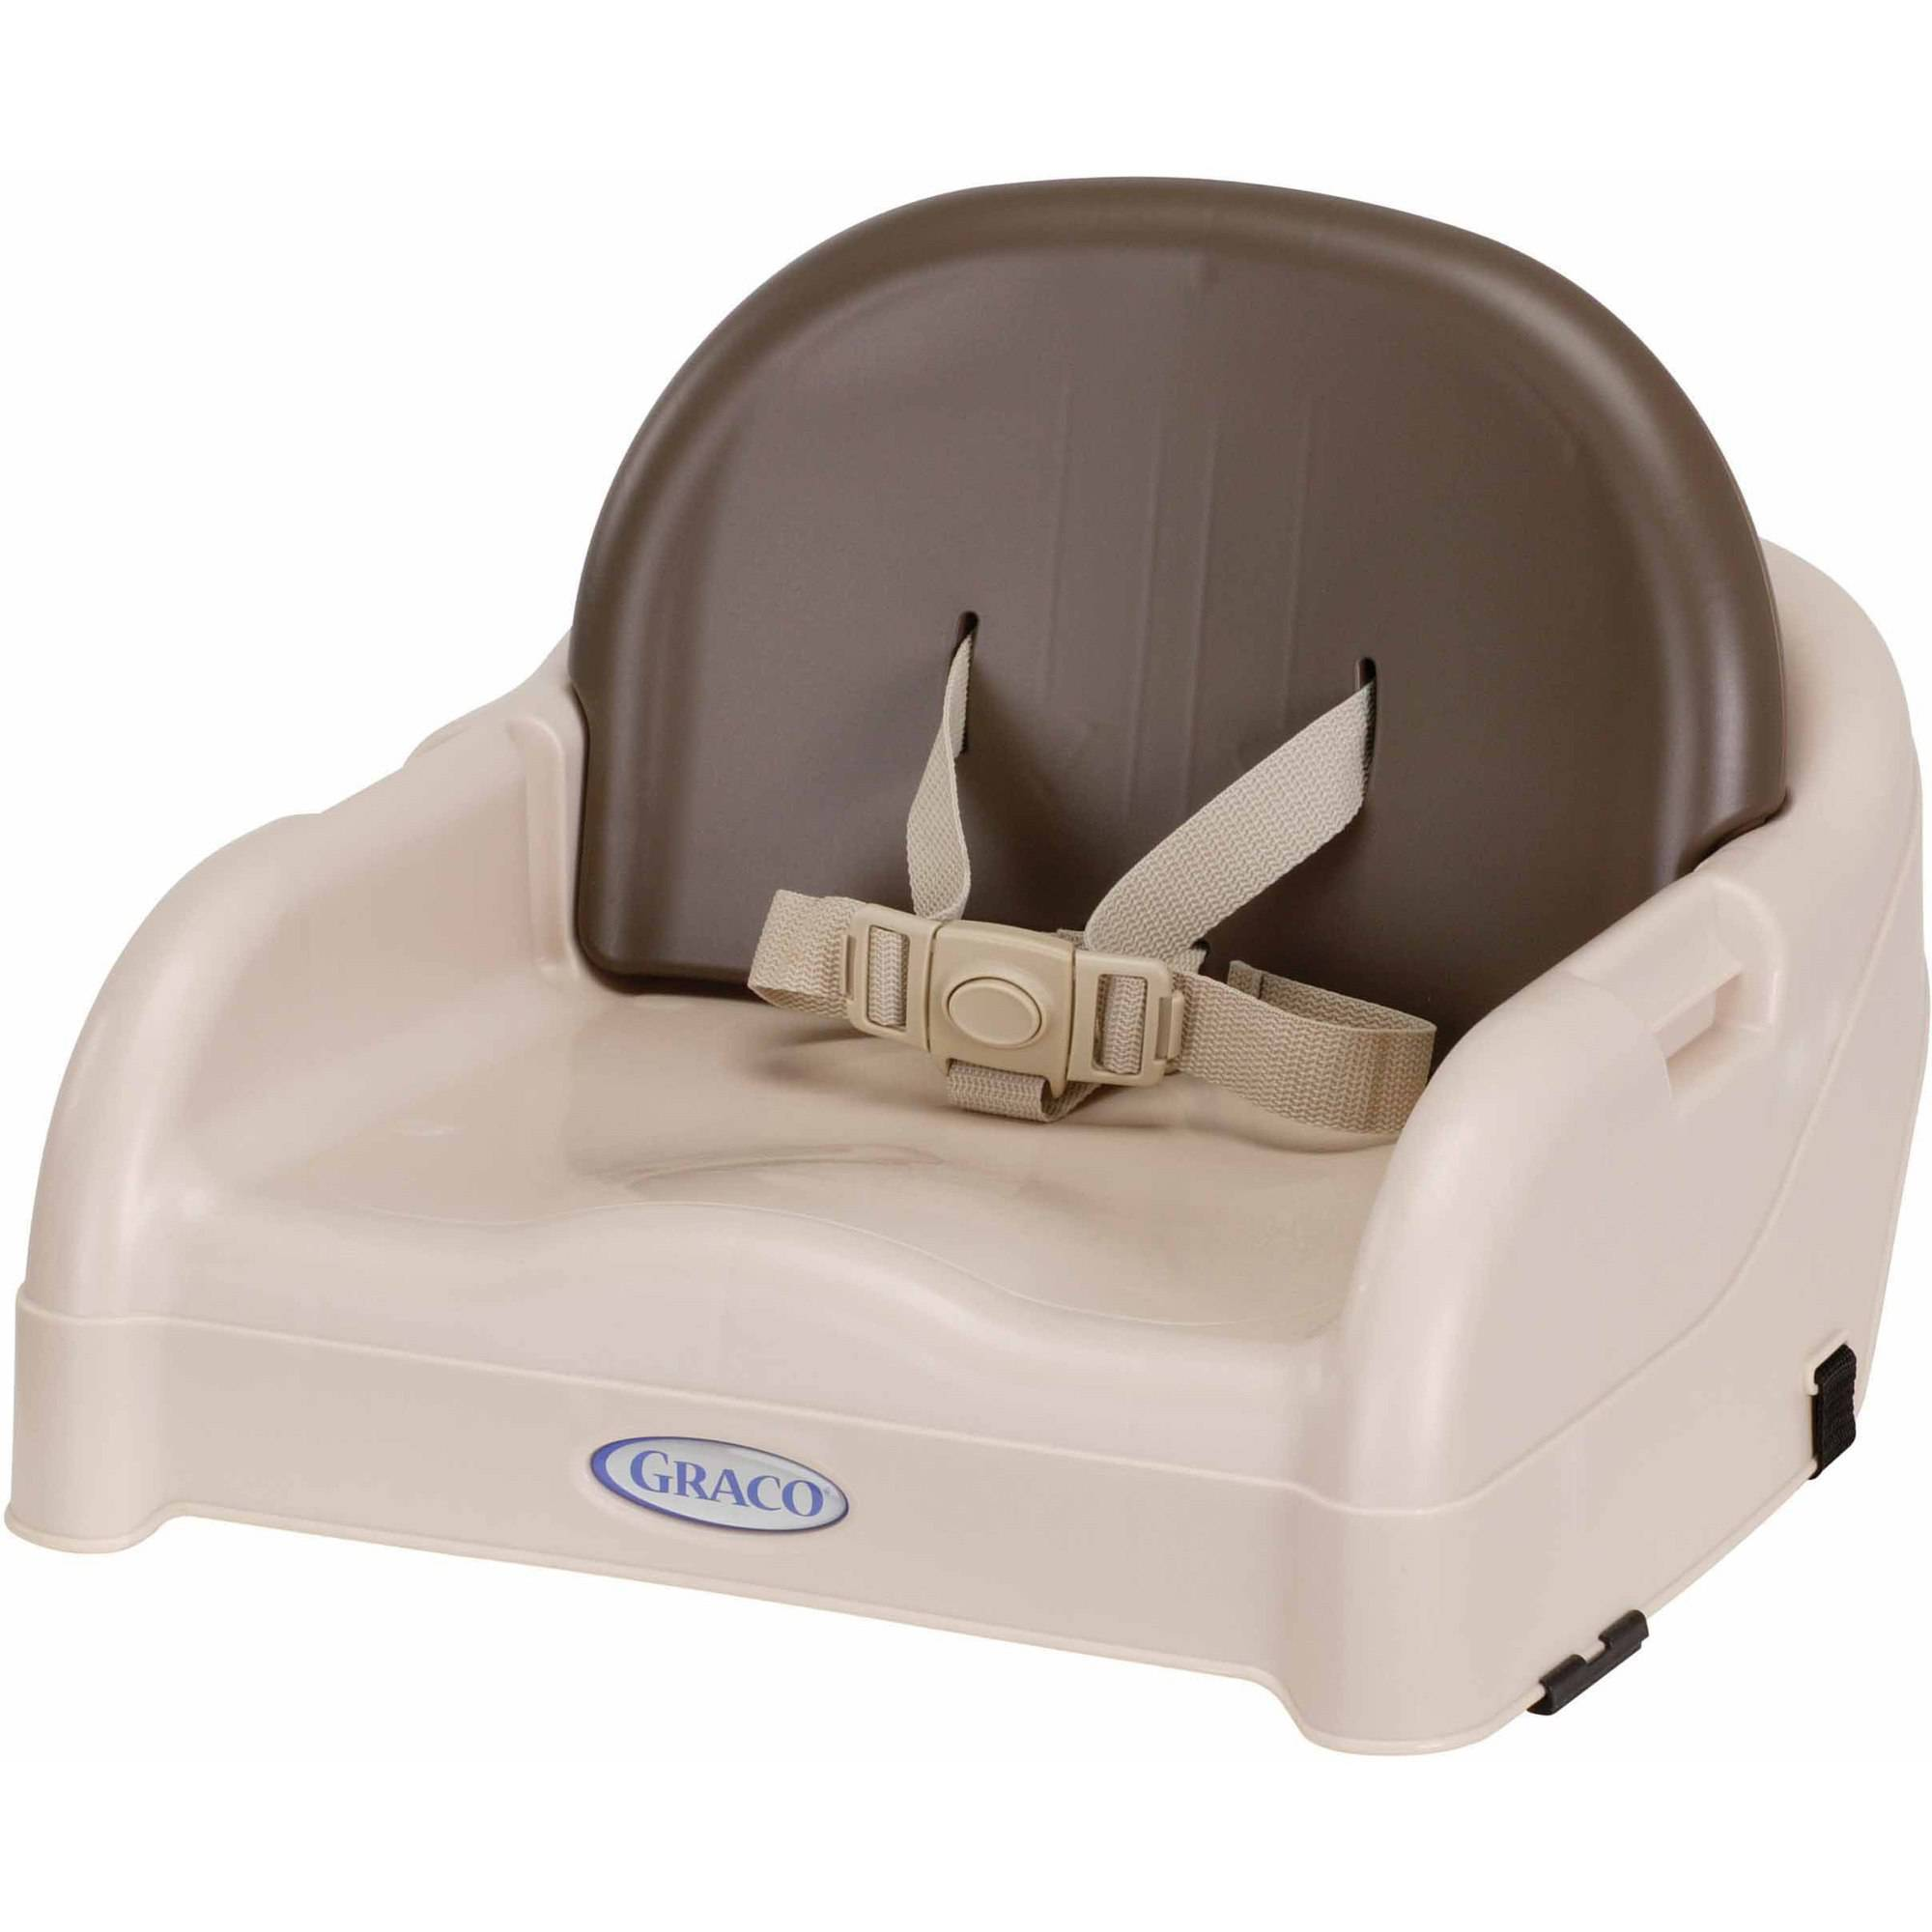 Graco Blossom Toddler Booster Seat - Brown